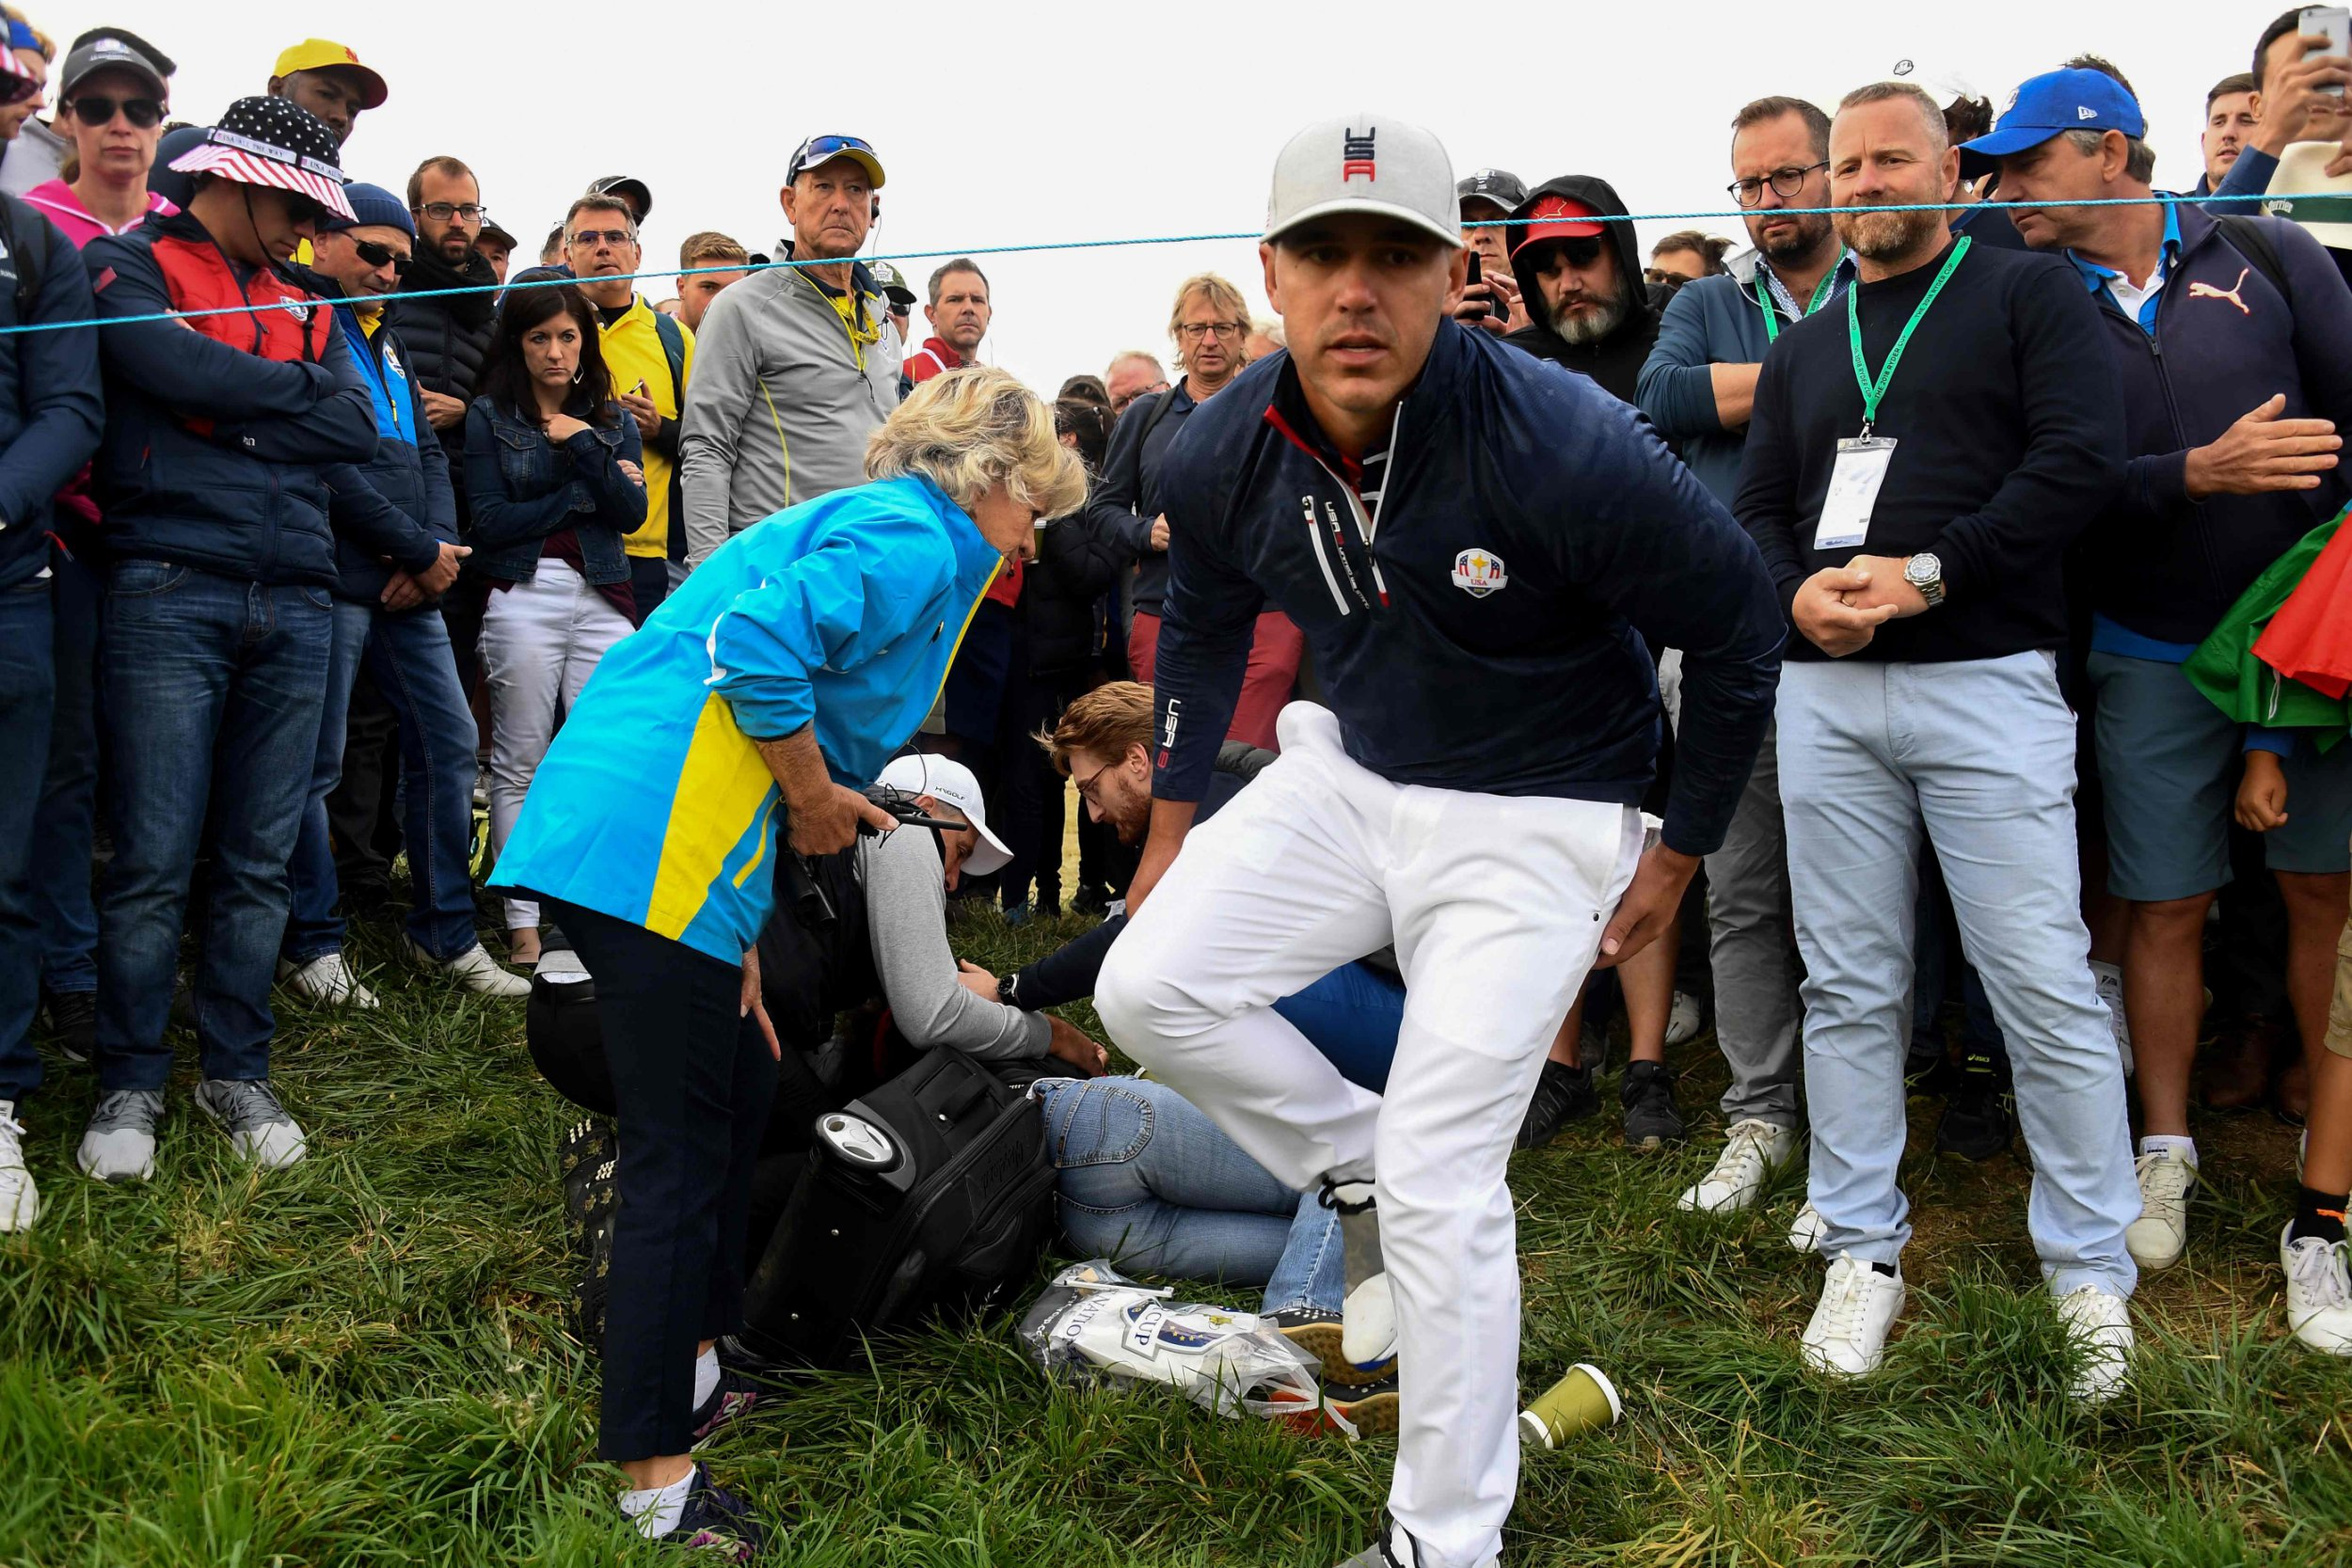 TOPSHOT - US golfer Brooks Koepka (R) reacts next to an injured spectator who fell during the fourball match on the first day of the 42nd Ryder Cup at Le Golf National Course at Saint-Quentin-en-Yvelines, south-west of Paris on September 28, 2018. (Photo by FRANCK FIFE / AFP)FRANCK FIFE/AFP/Getty Images